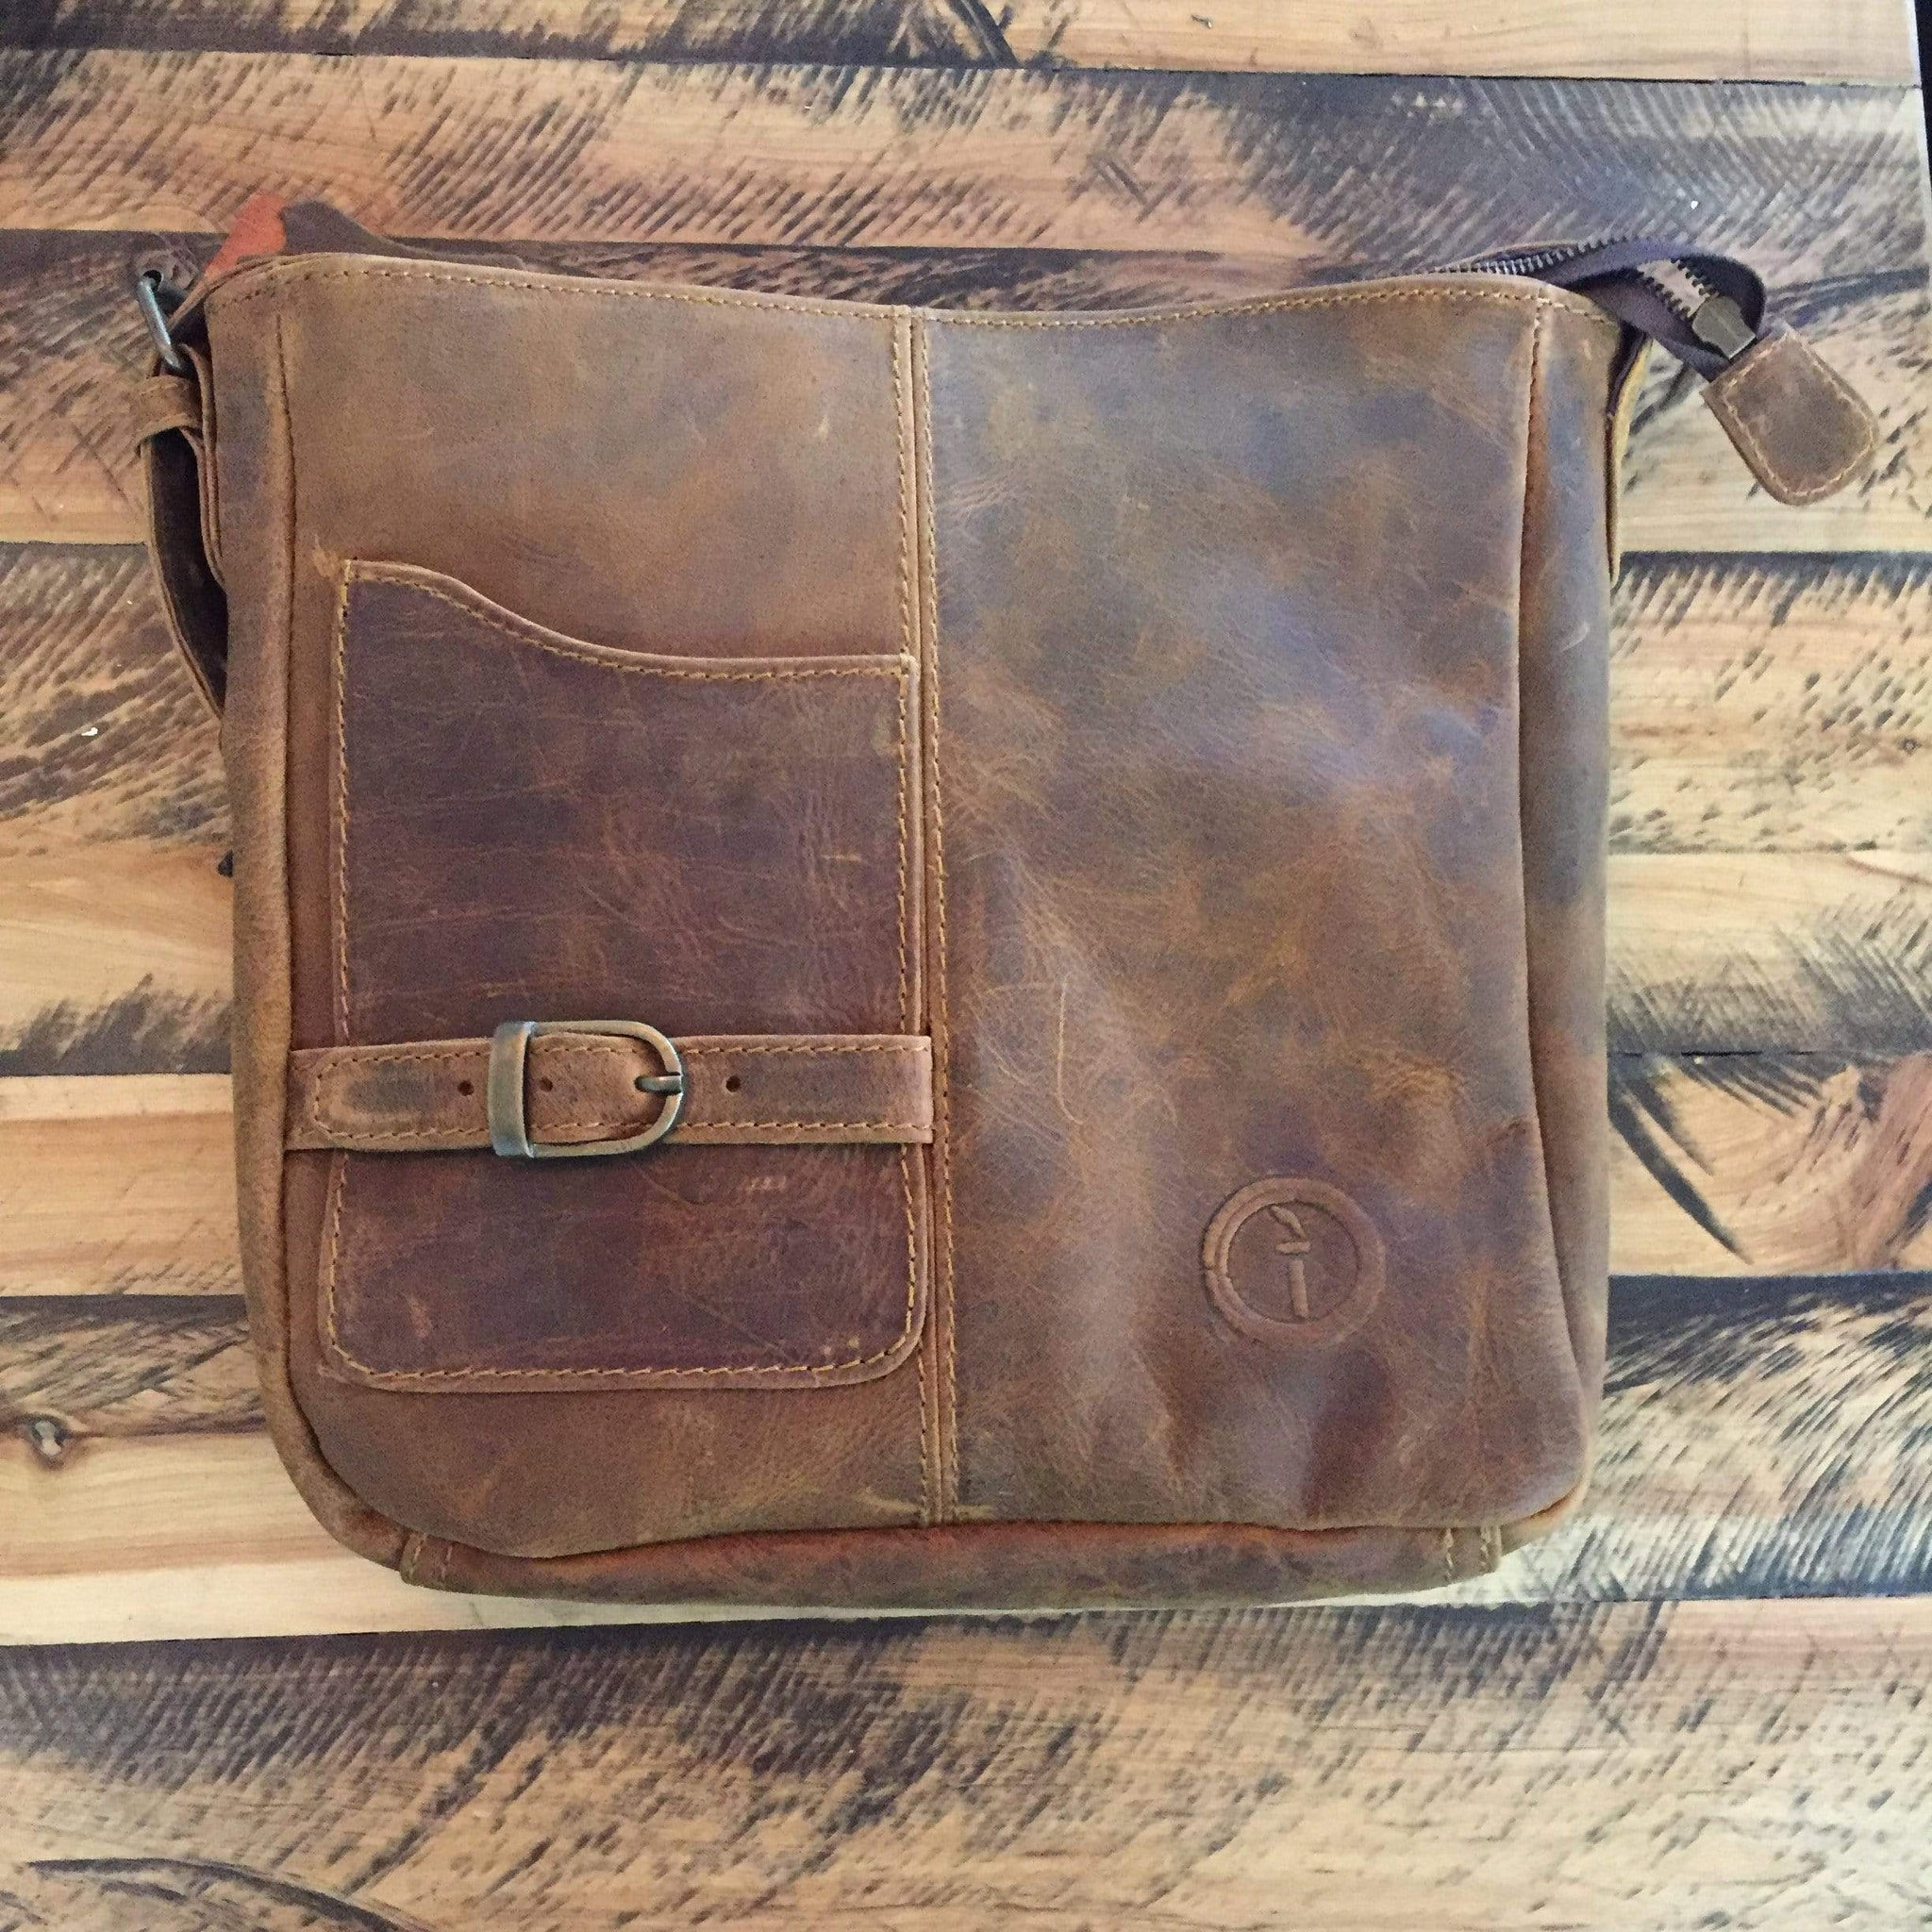 Indepal Leather BAGS Crazy Horse Tan Bondi Leather Satchel